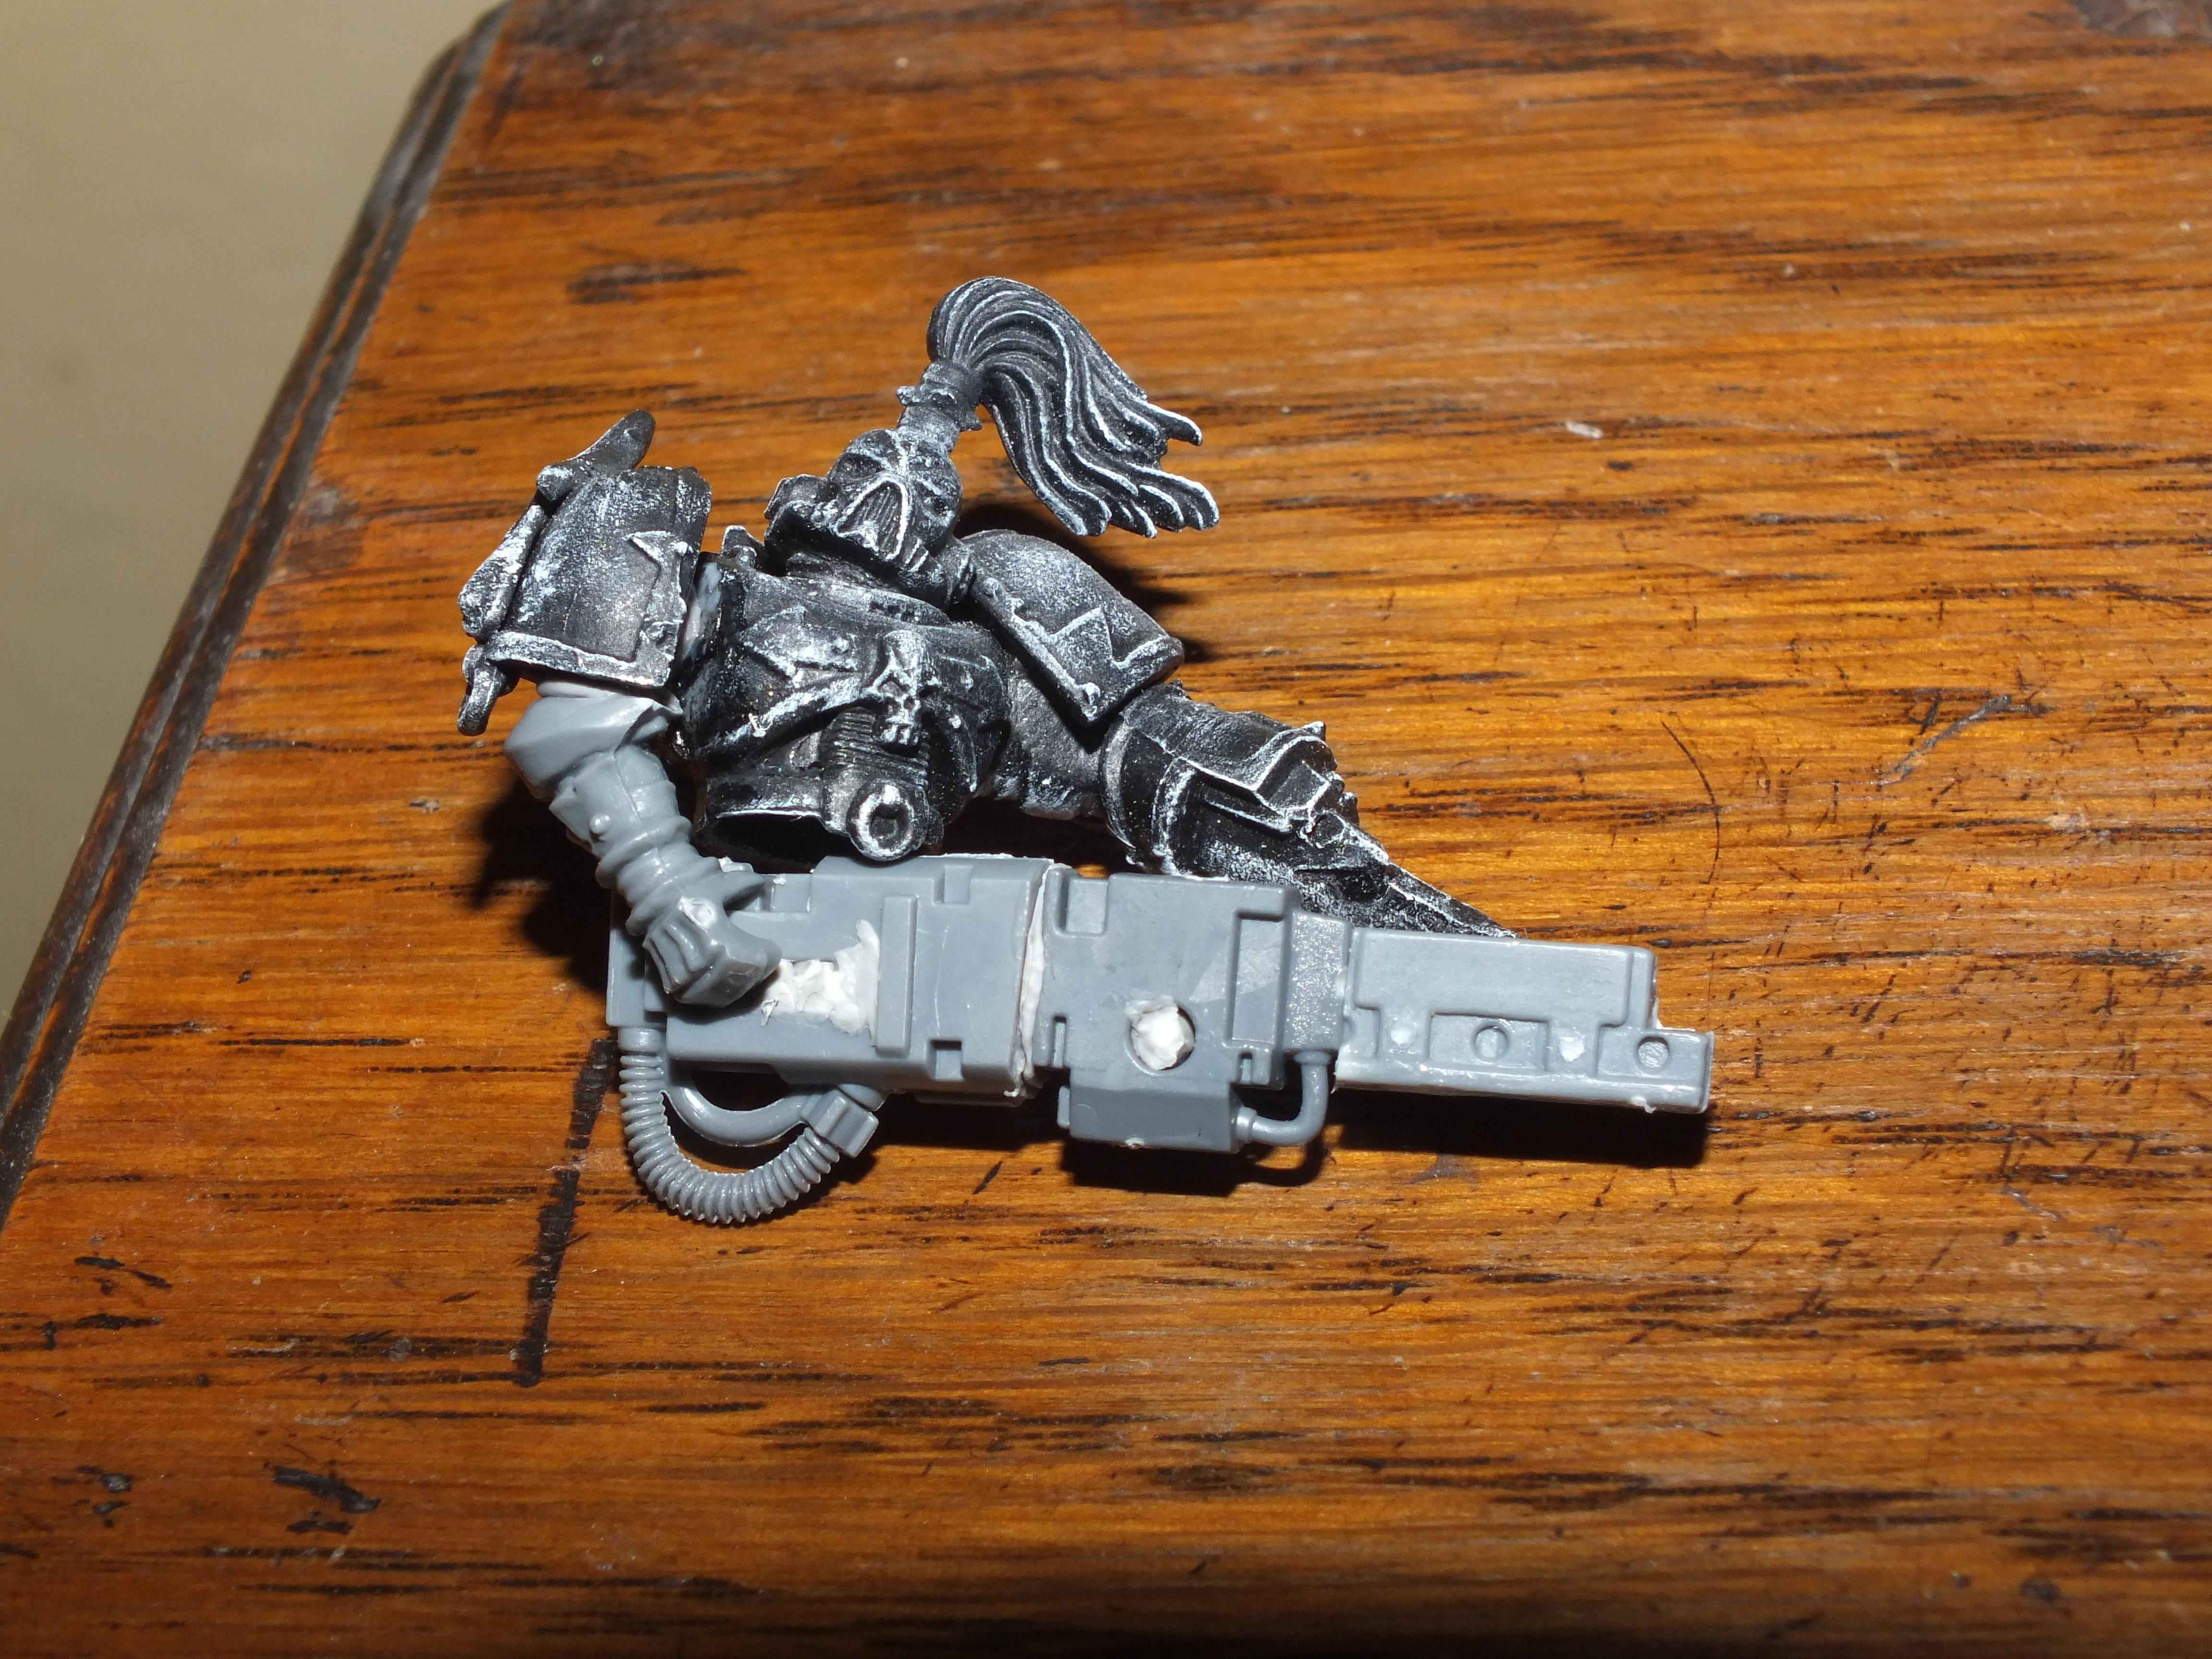 Angel Of Ecstasy, Blastmaster, Chaos Space Marines, Orpse, Terrain, Work In Progress